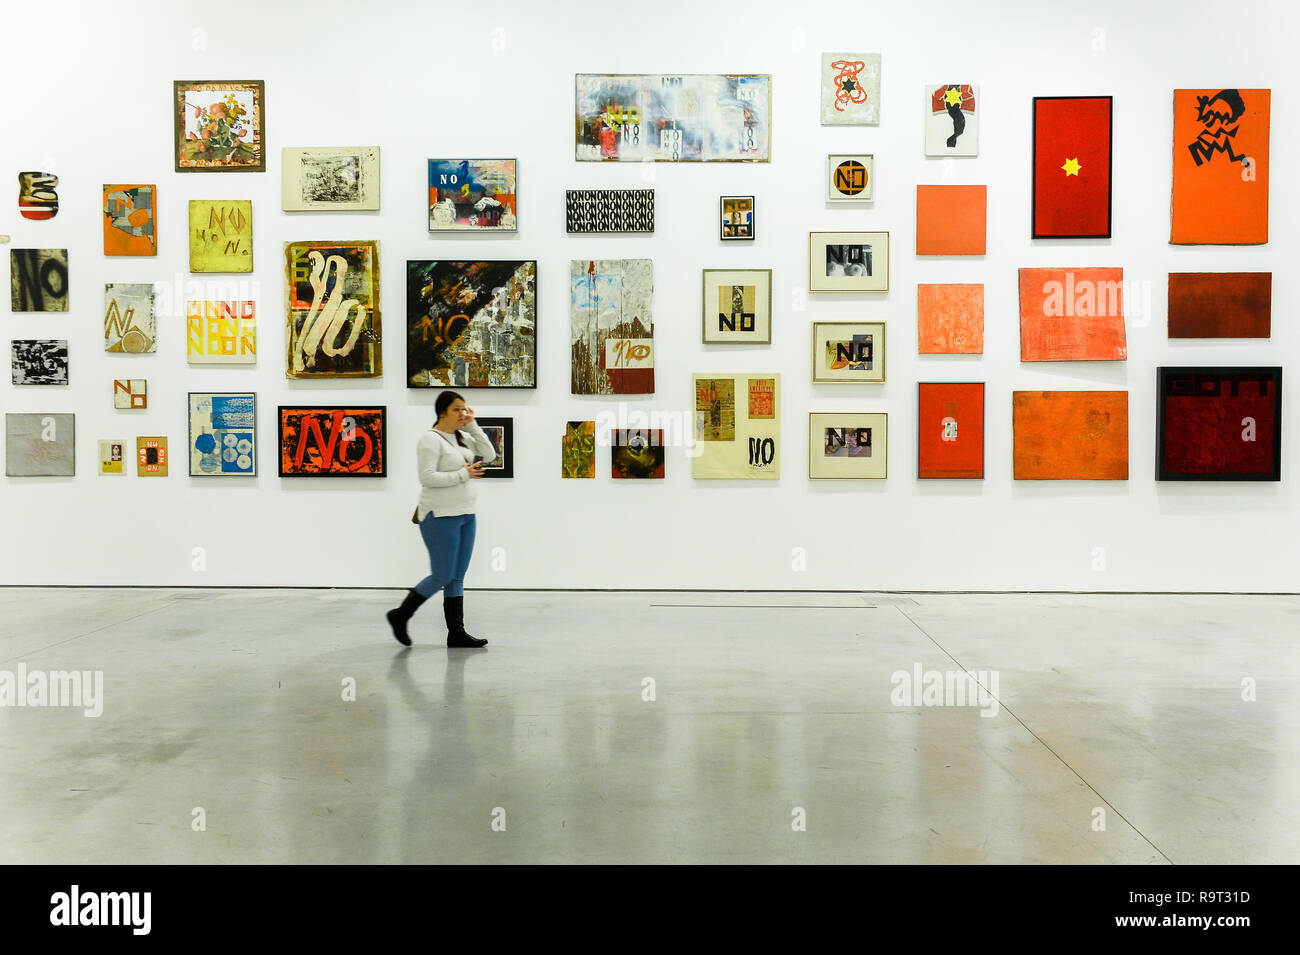 A woman seen walking front of art works of Boris Lurie Pop-art after the Holocaust exhibition. Boris Lurie (1924-2008) is an American artist of Jewish origin who was born in Leningrad (today St. Petersburg). In August 1941, the Germans began deporting the local Jewish population to the ghetto in Riga, where Boris Lurie spent his childhood. His Grandmother, mother, sister and beloved  were shot in a forest near Rumbuli in the Riga suburbs in December 1941. his work is closely related to this experience during the Holocaust. The motifs appearing in his works are photos from concentration camps,  Stock Photo